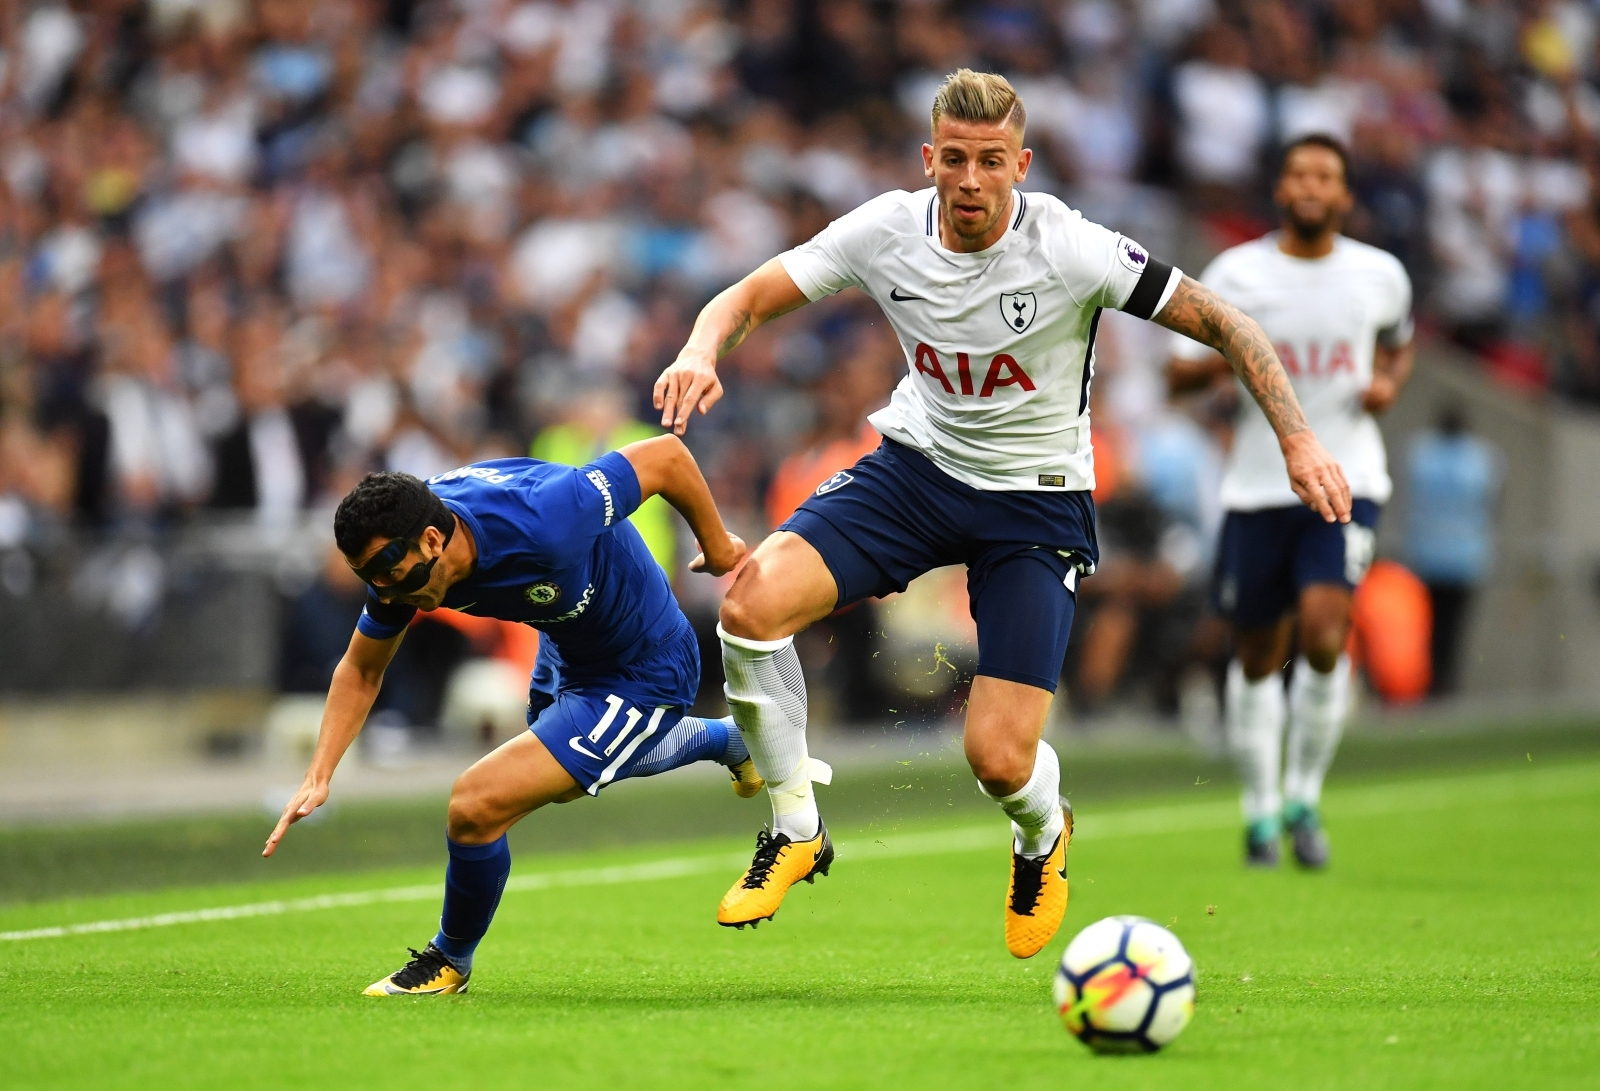 Tottenham star reportedly makes contractual demands to the club